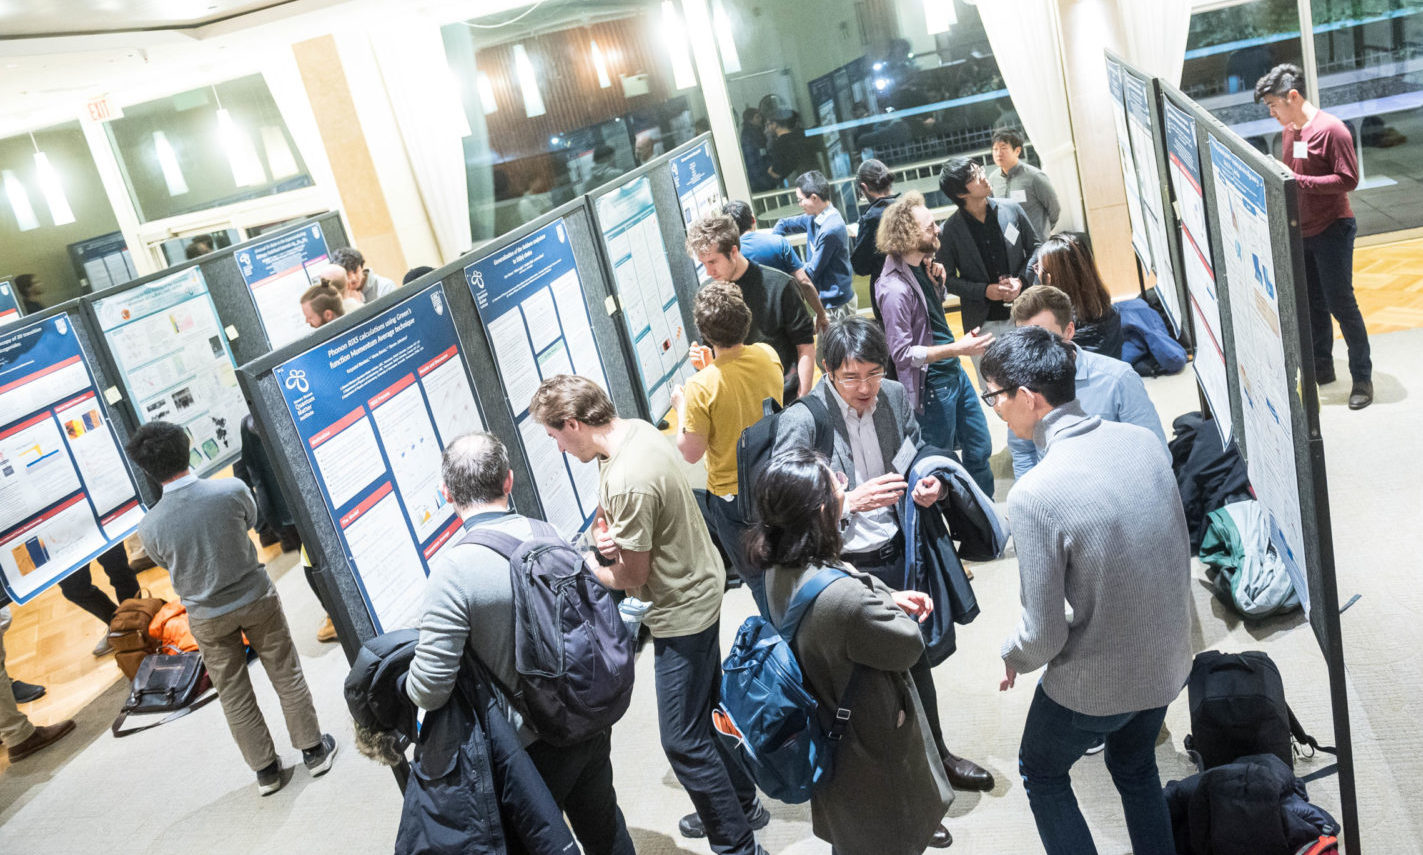 Poster presentations during a visit from our partners at the Max Planck Institute and University of Tokyo.